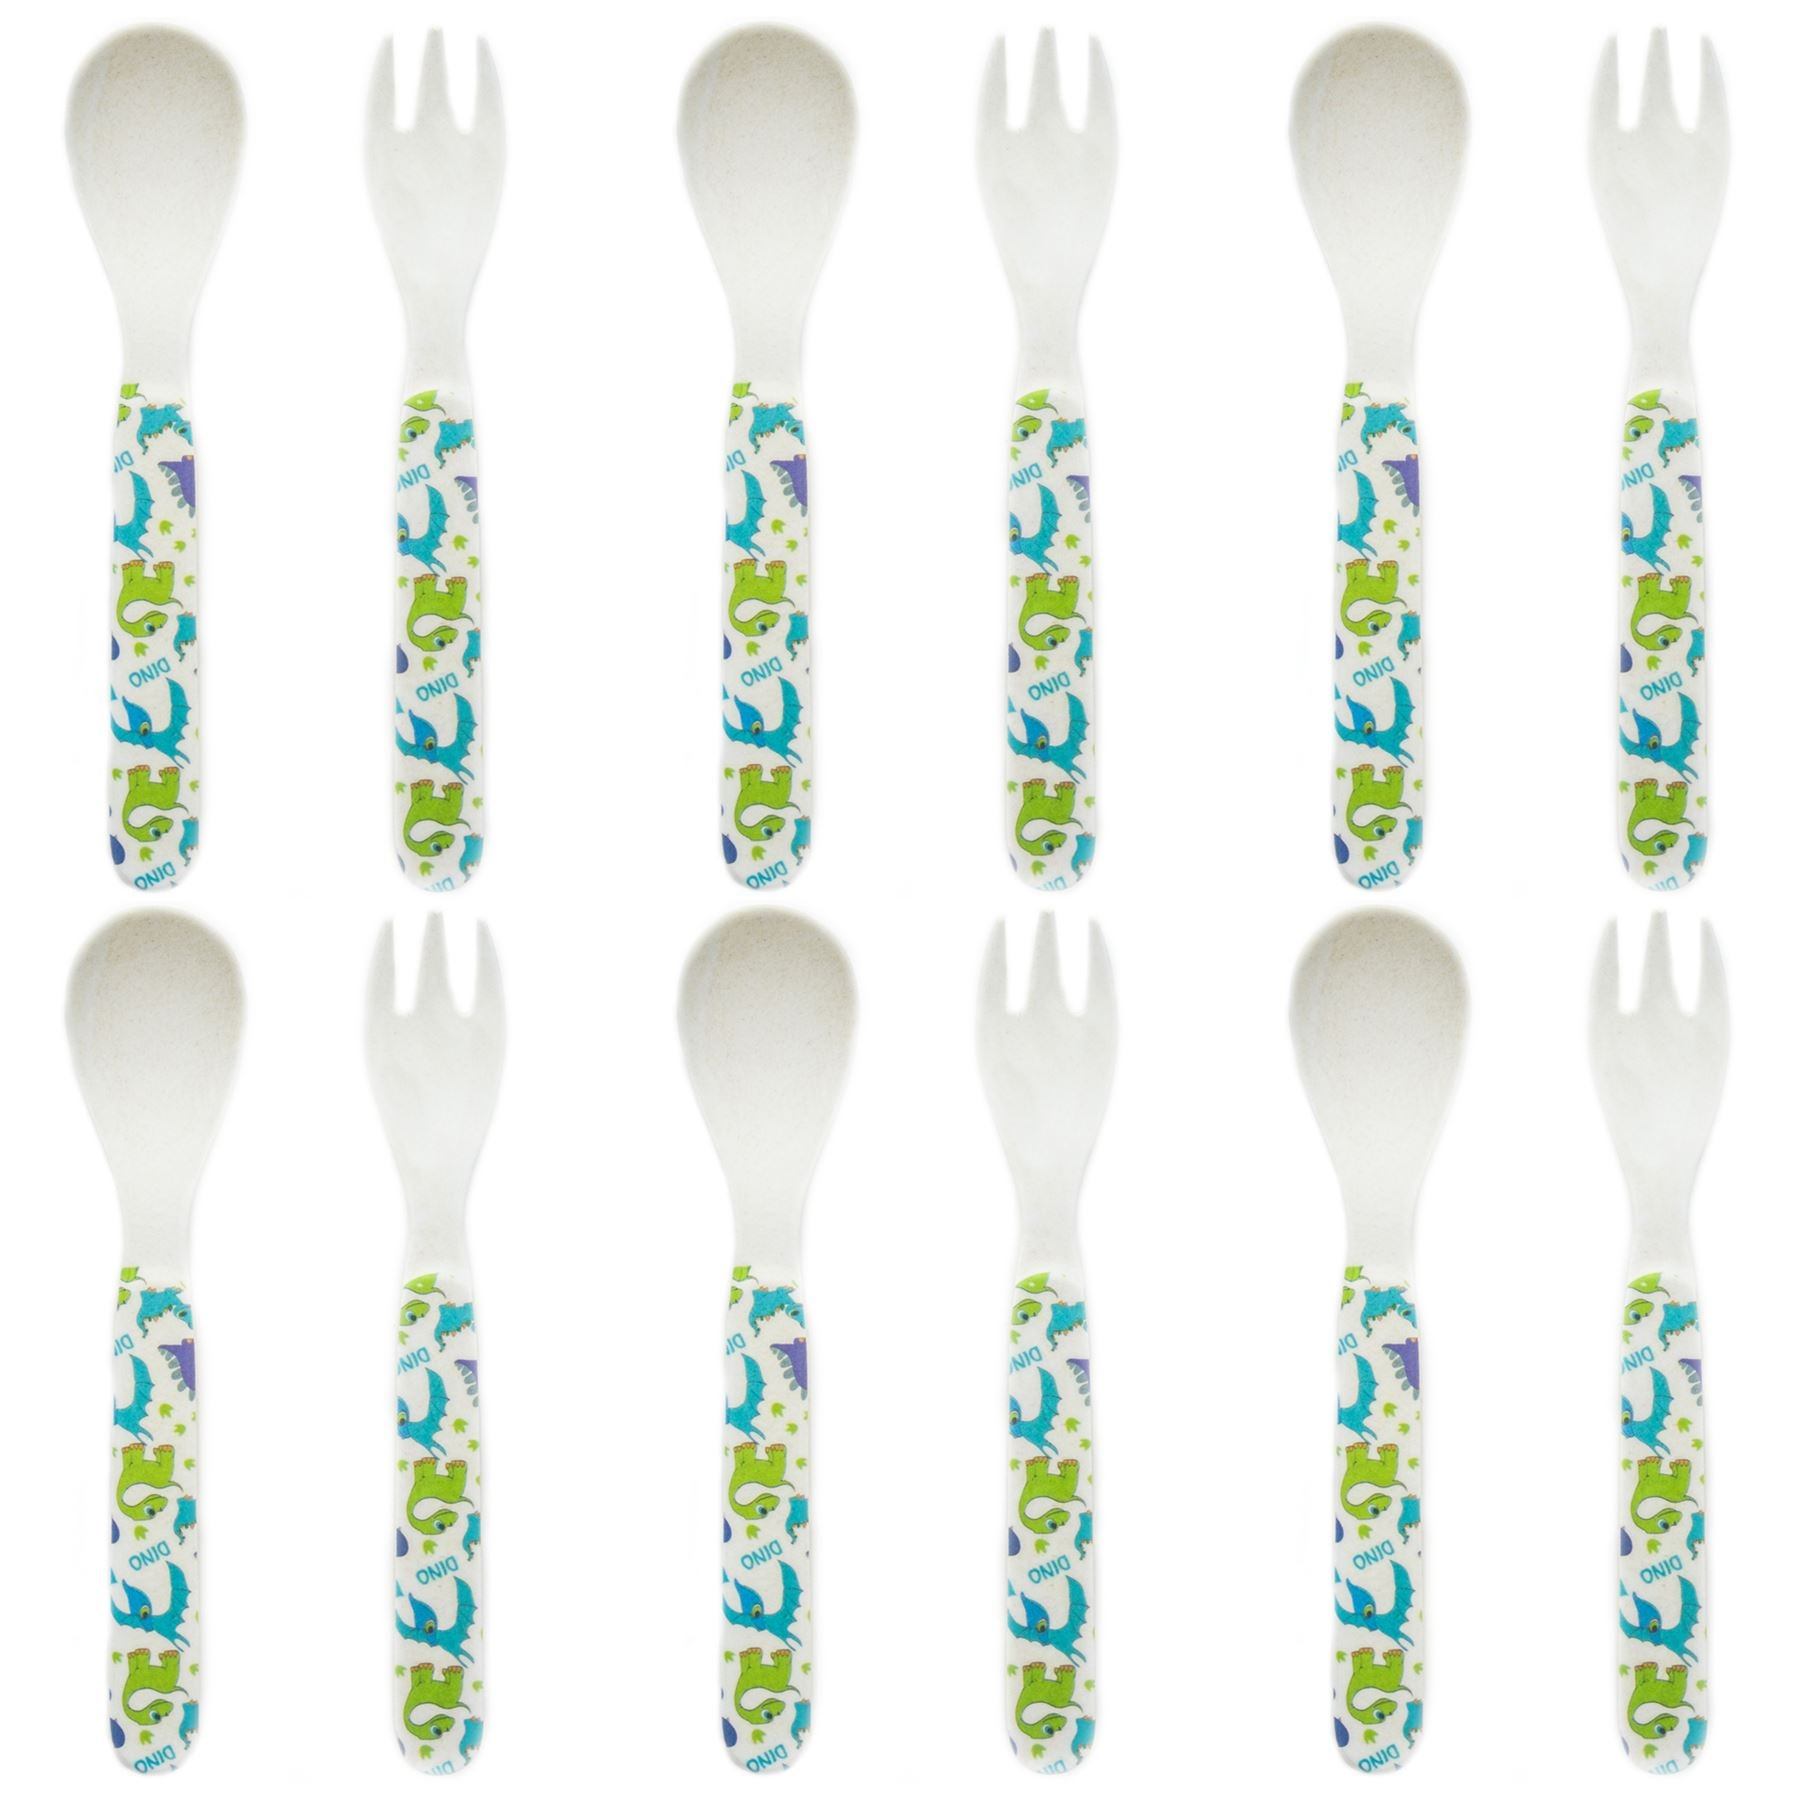 Tiny Dining Children's Bamboo Fibre Dining Fork & Spoon Cutlery Set - Dinosaur - Pack of 6